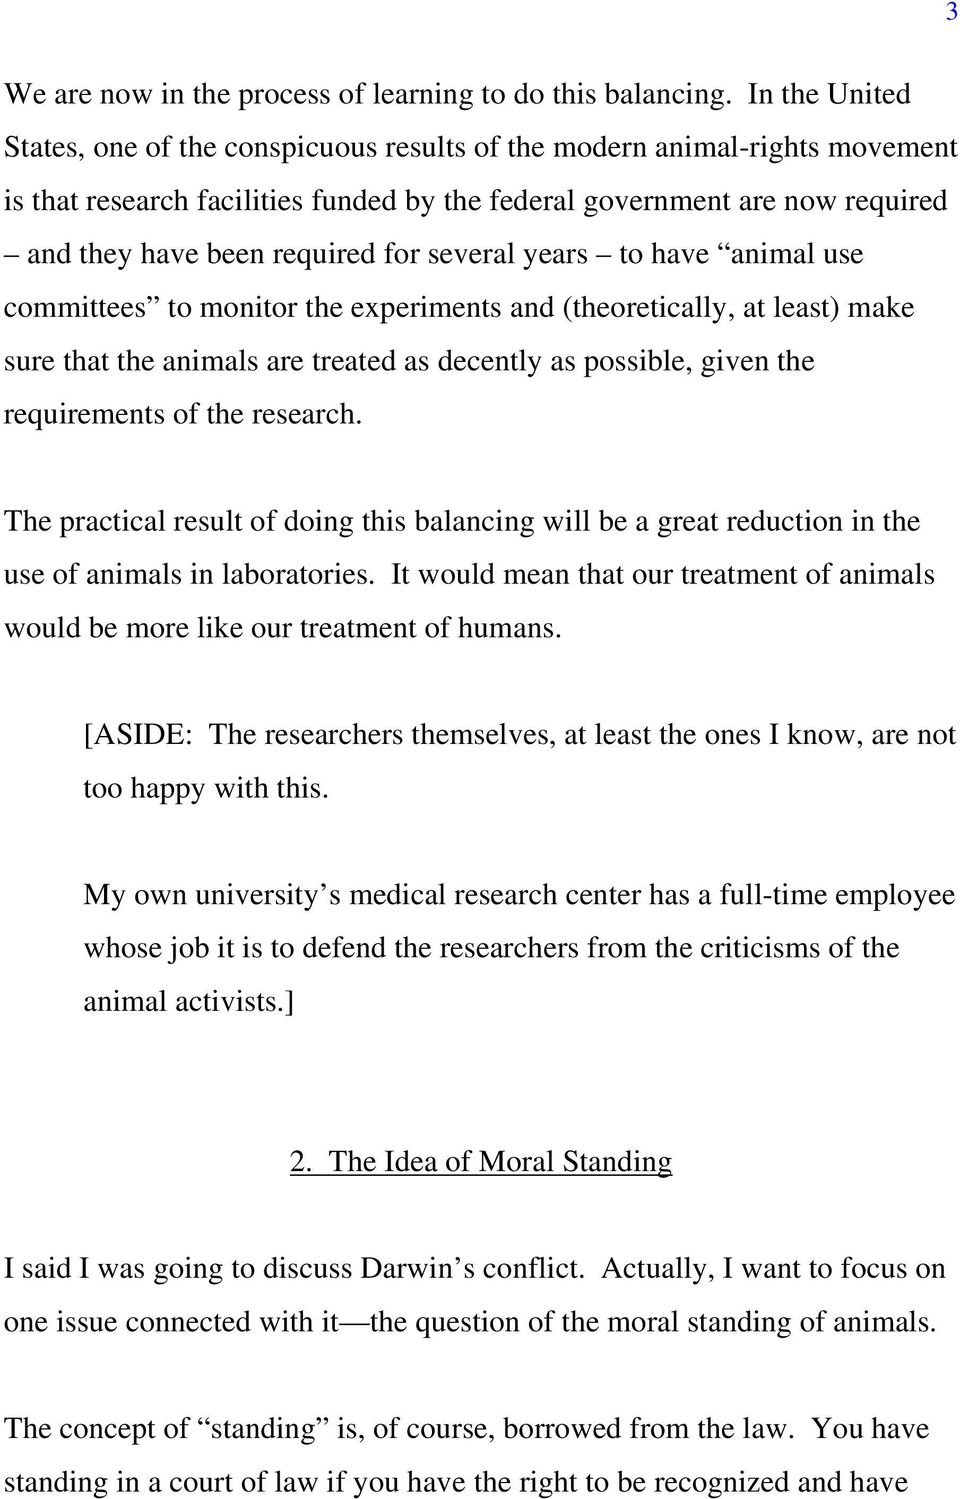 several years to have animal use committees to monitor the experiments and (theoretically, at least) make sure that the animals are treated as decently as possible, given the requirements of the